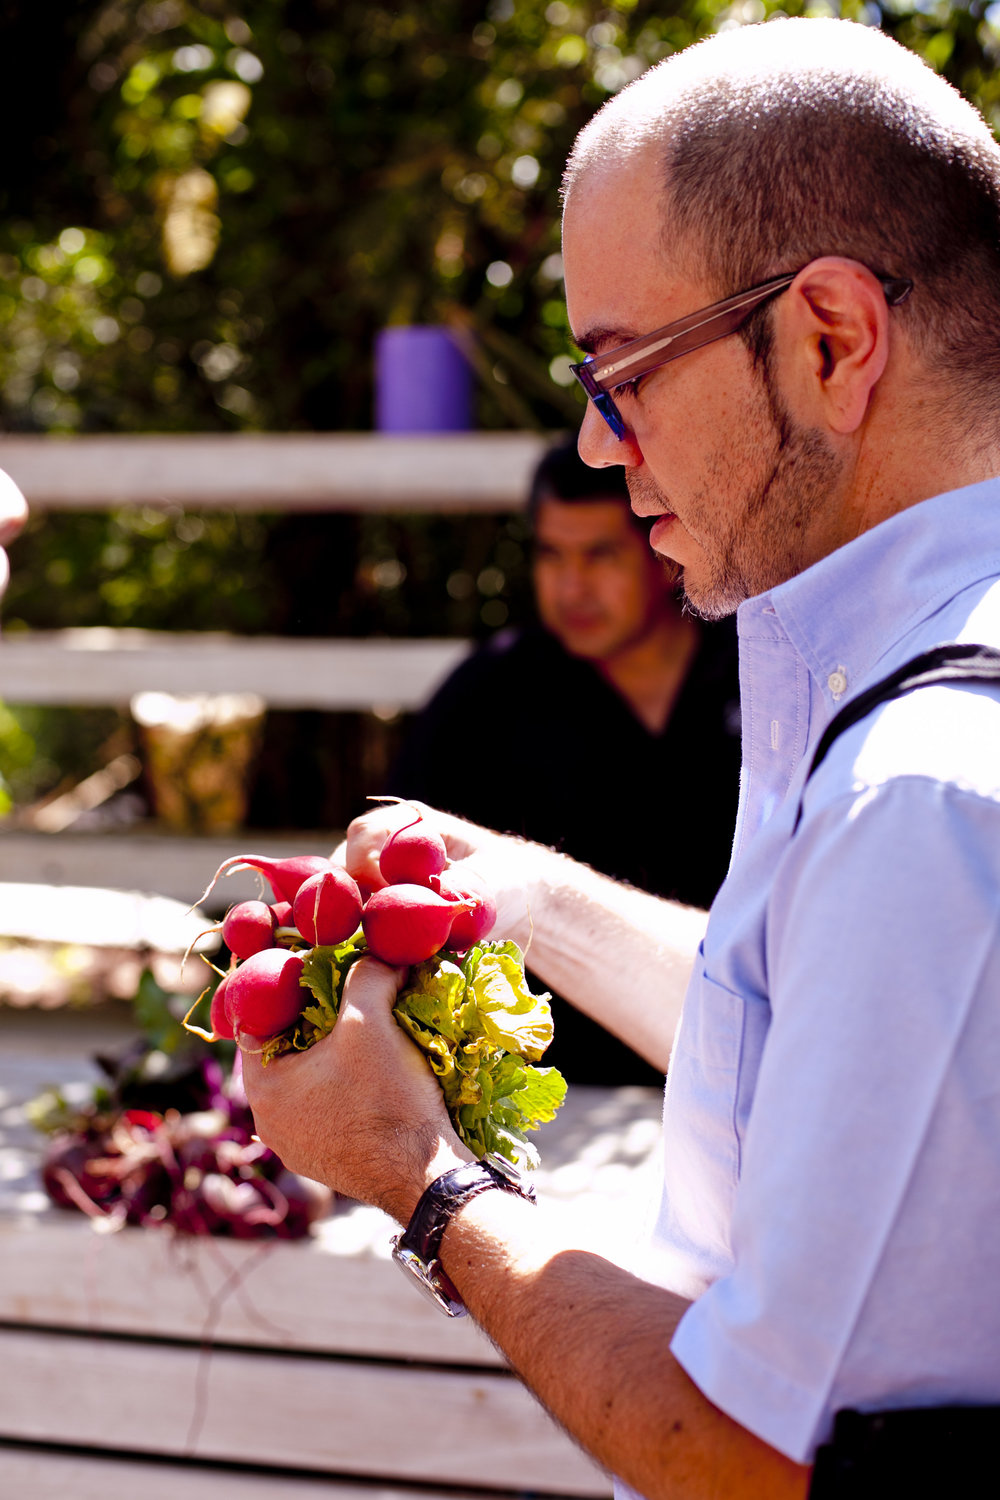 Copy of man holding bunch of beet roots in Mexico City